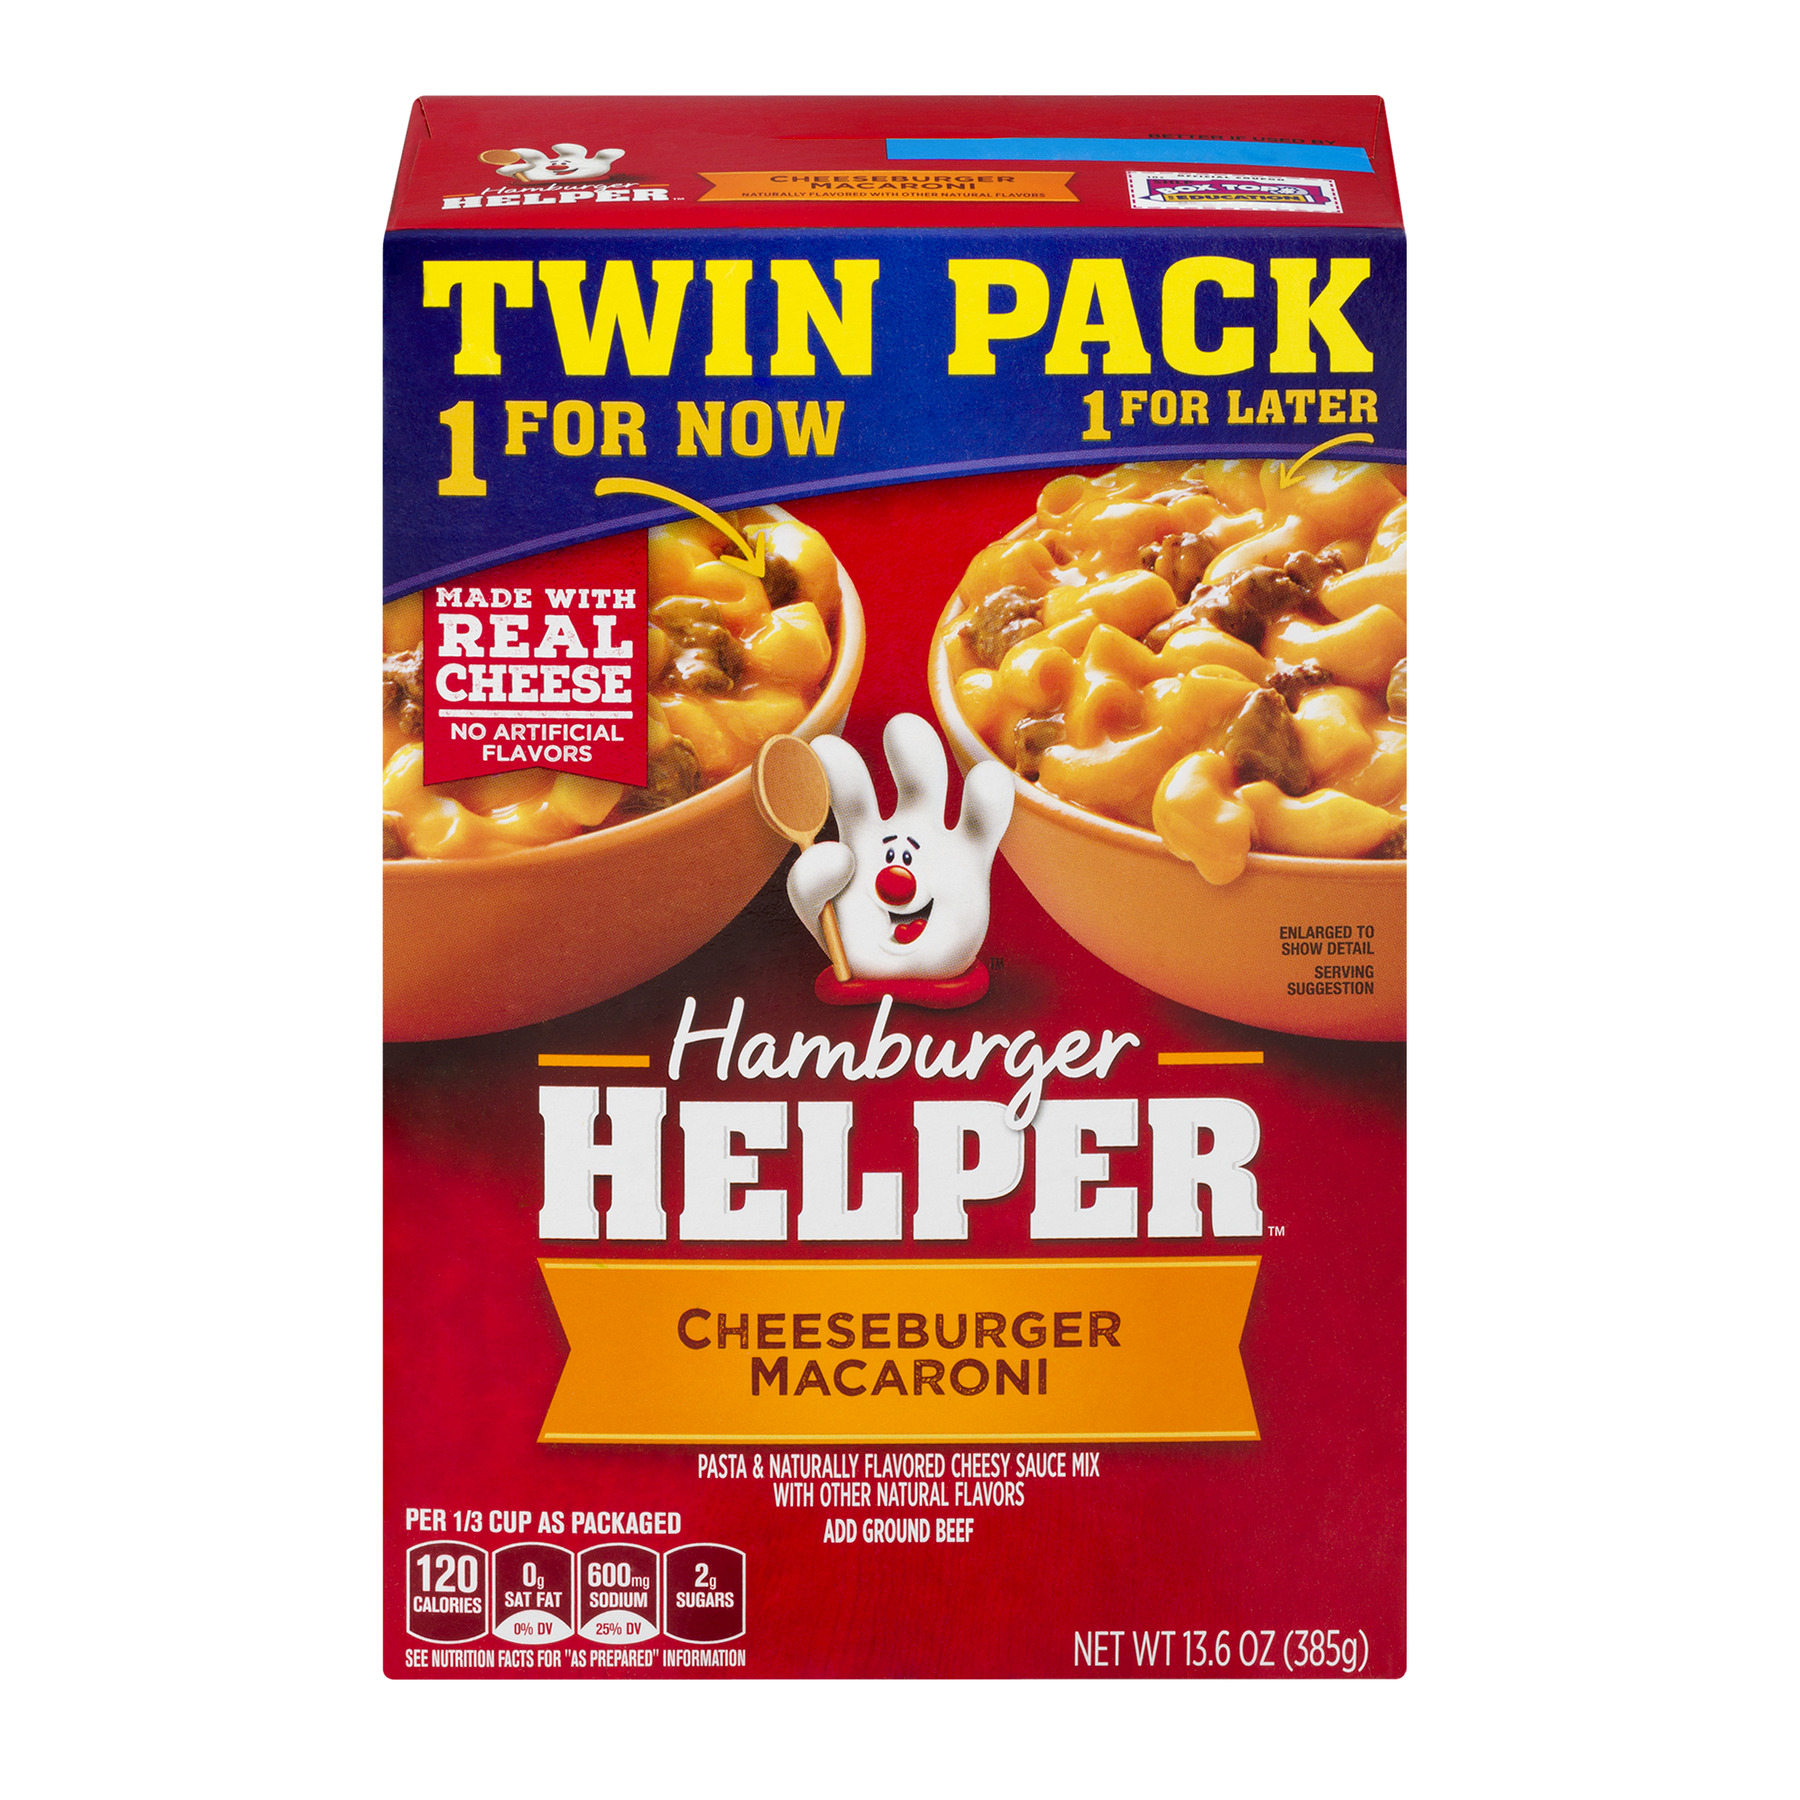 Betty Crocker Cheeseburger Macaroni Hamburger Helper 13.6 oz. Box